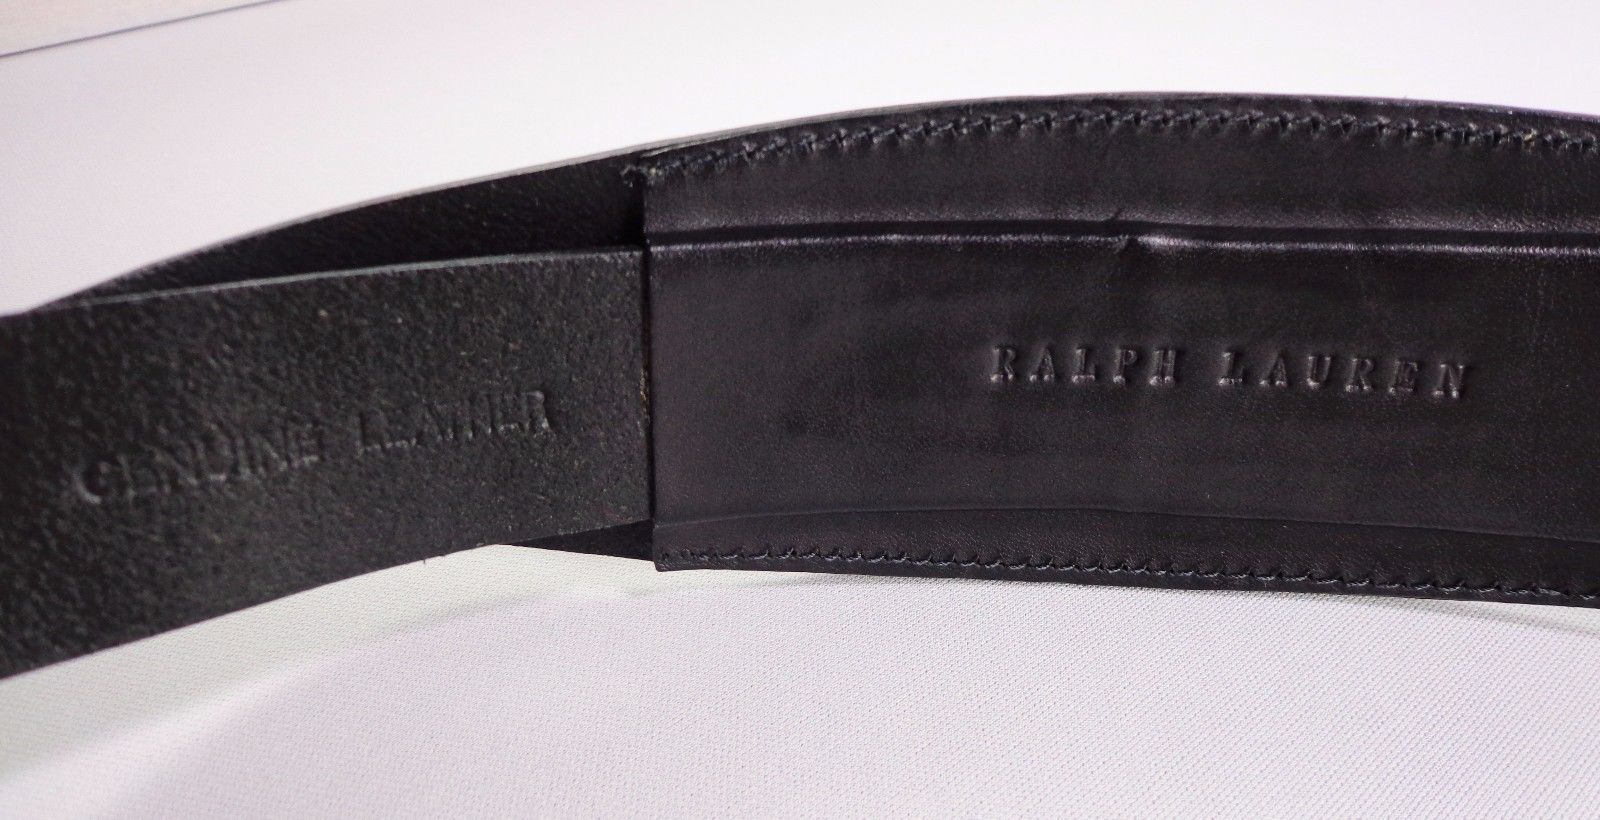 Ralph Lauren Womens Black Leather Belt Wide Size M Medium Made in Argentina